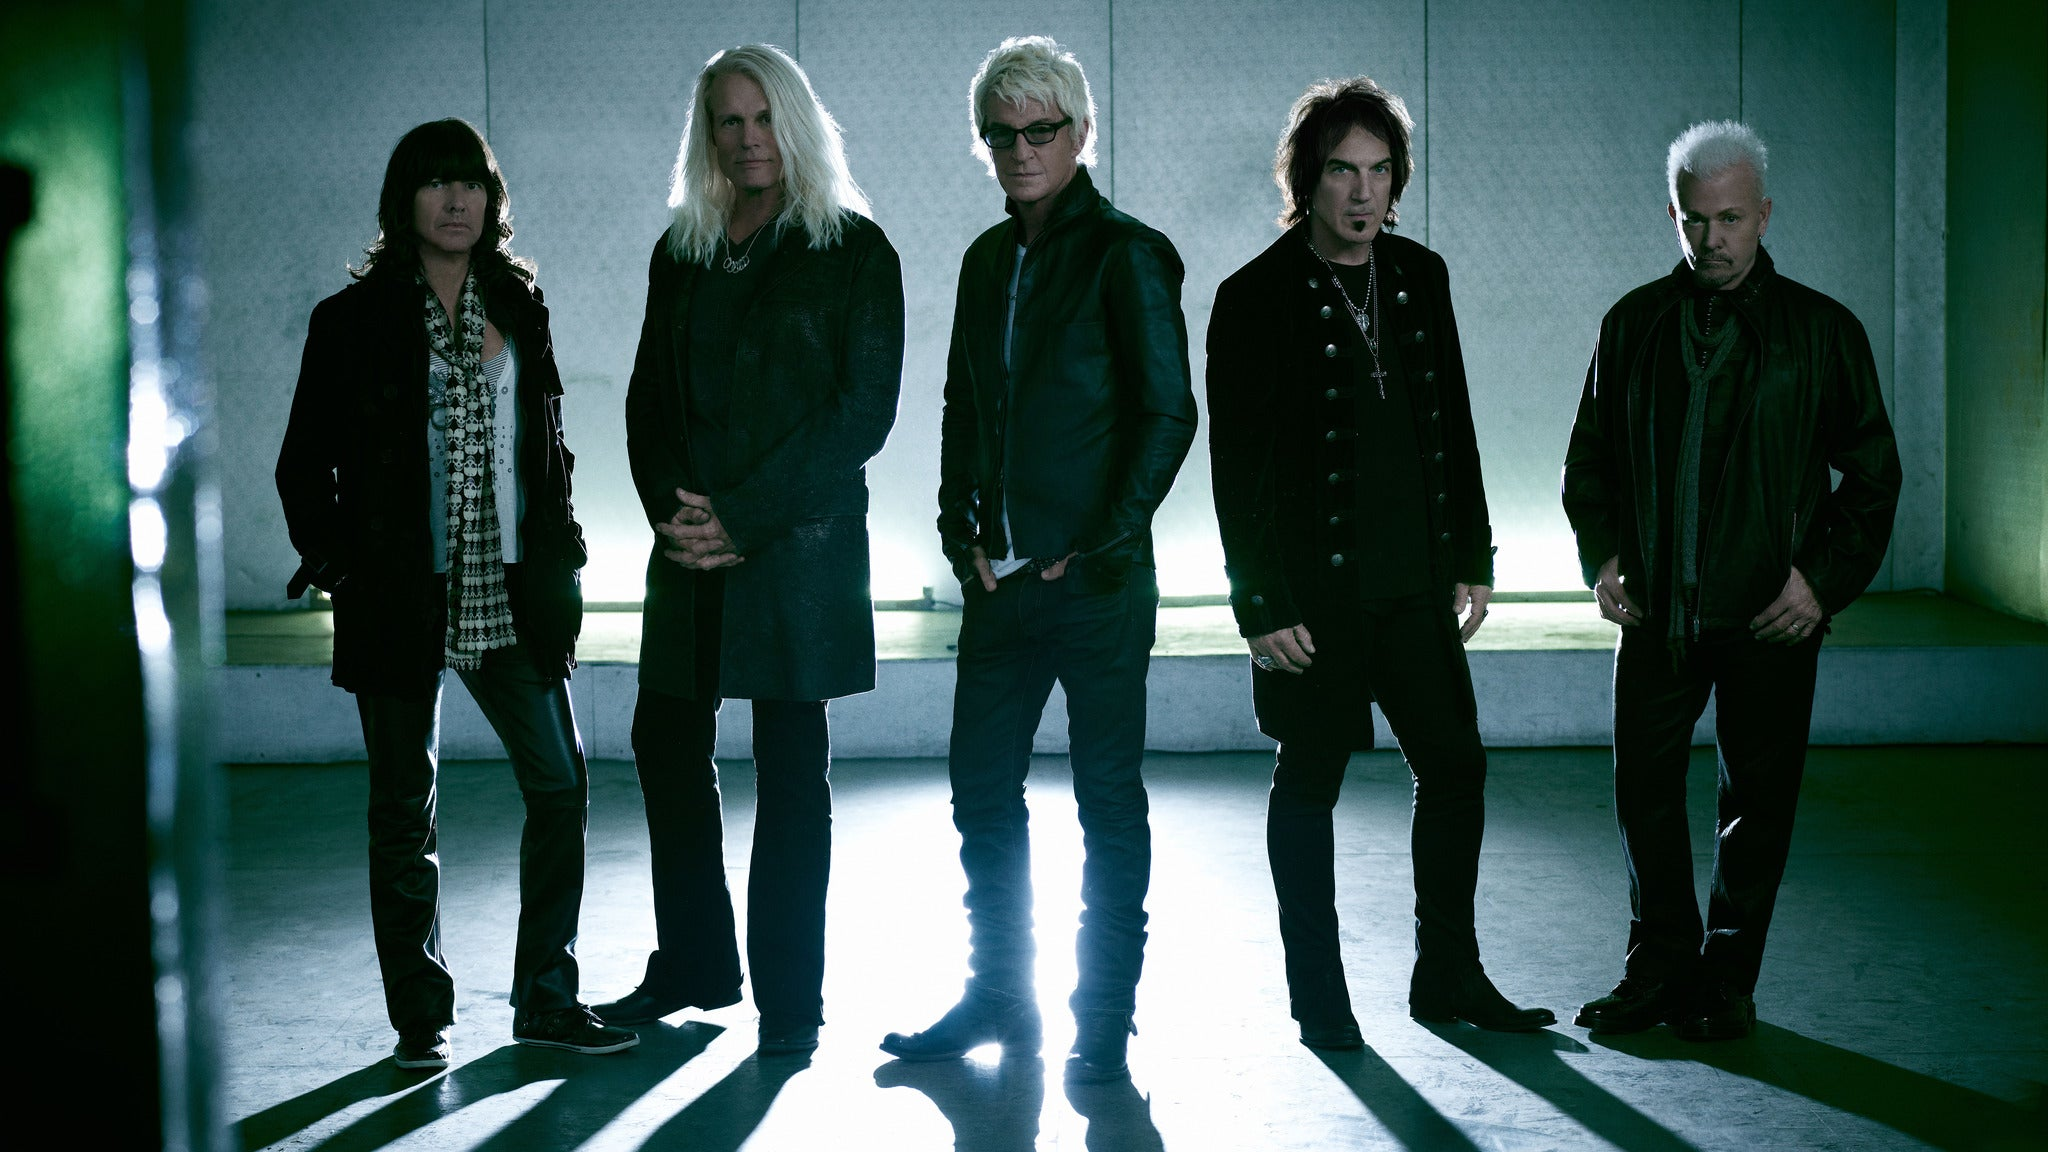 REO Speedwagon at Sharon L Morse Performing Arts Center